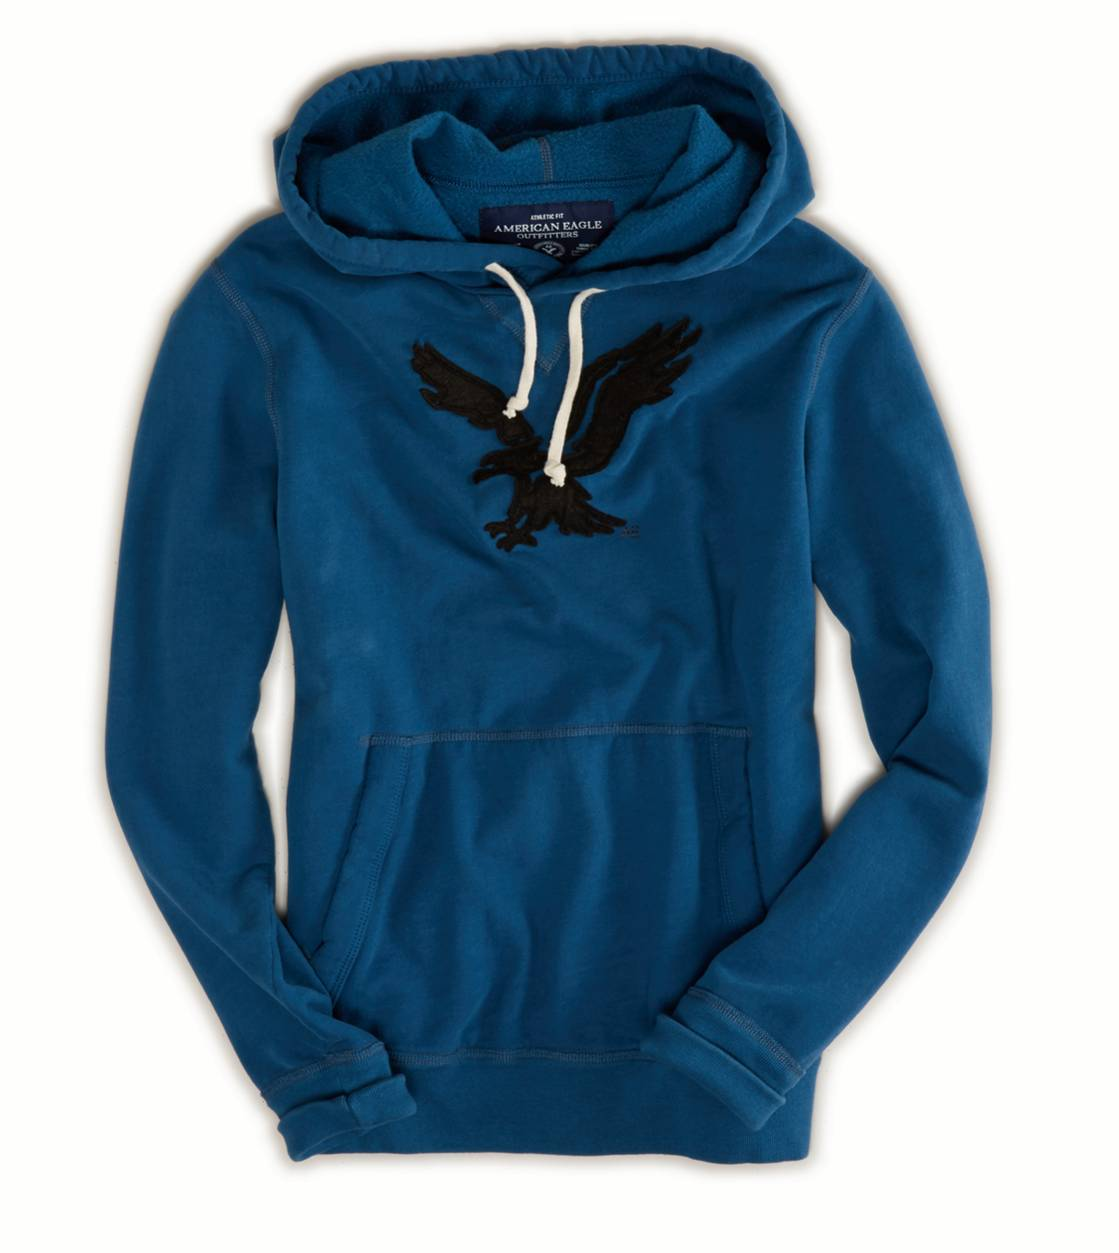 Atlantic Teal AE Heritage Fleece